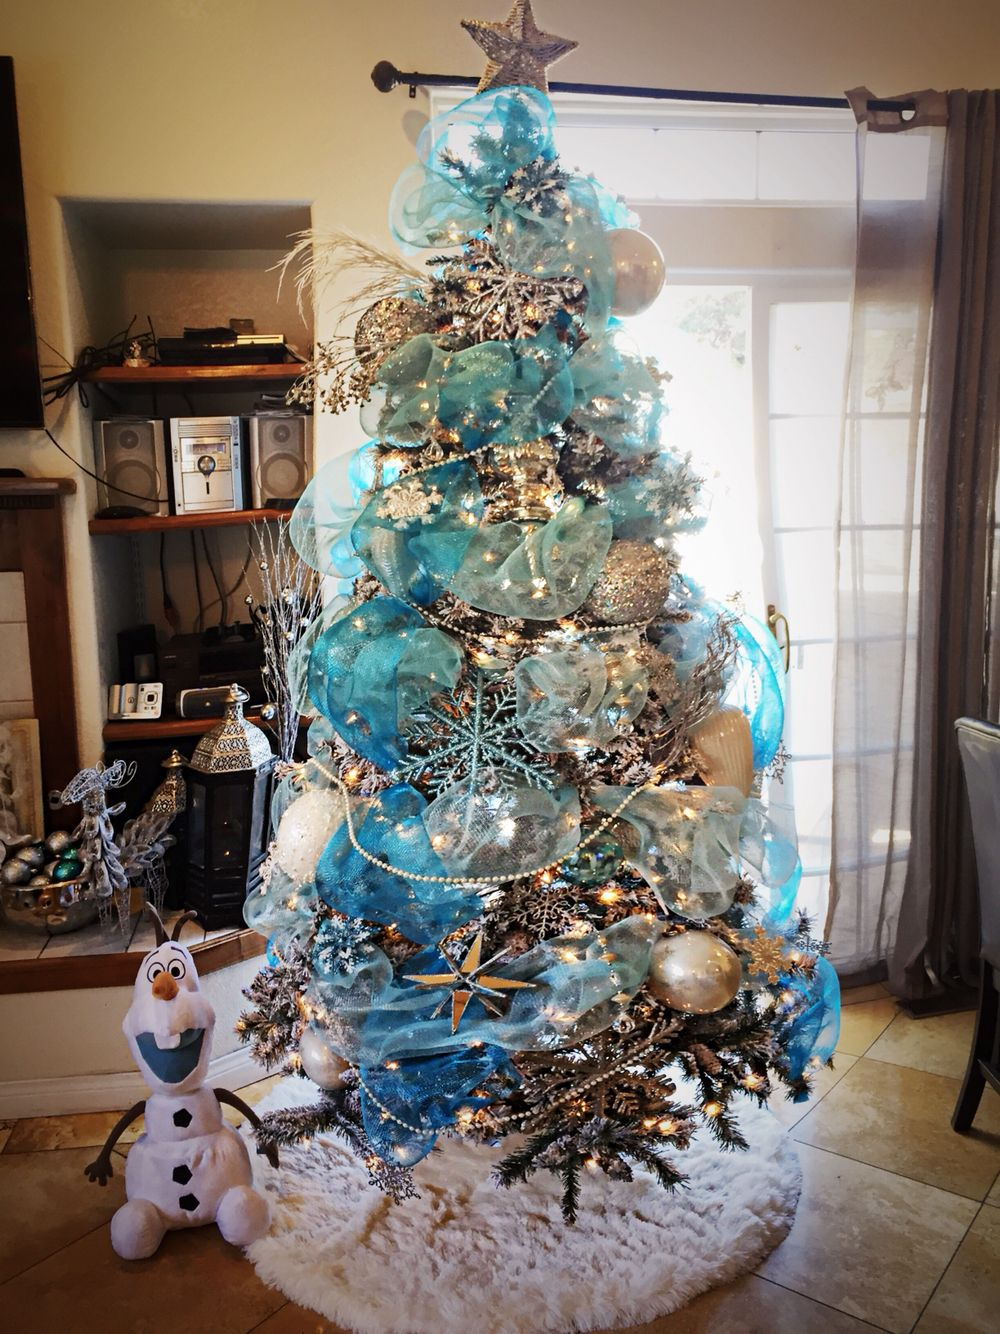 Frozen Themed Christmas Tree I Created :)